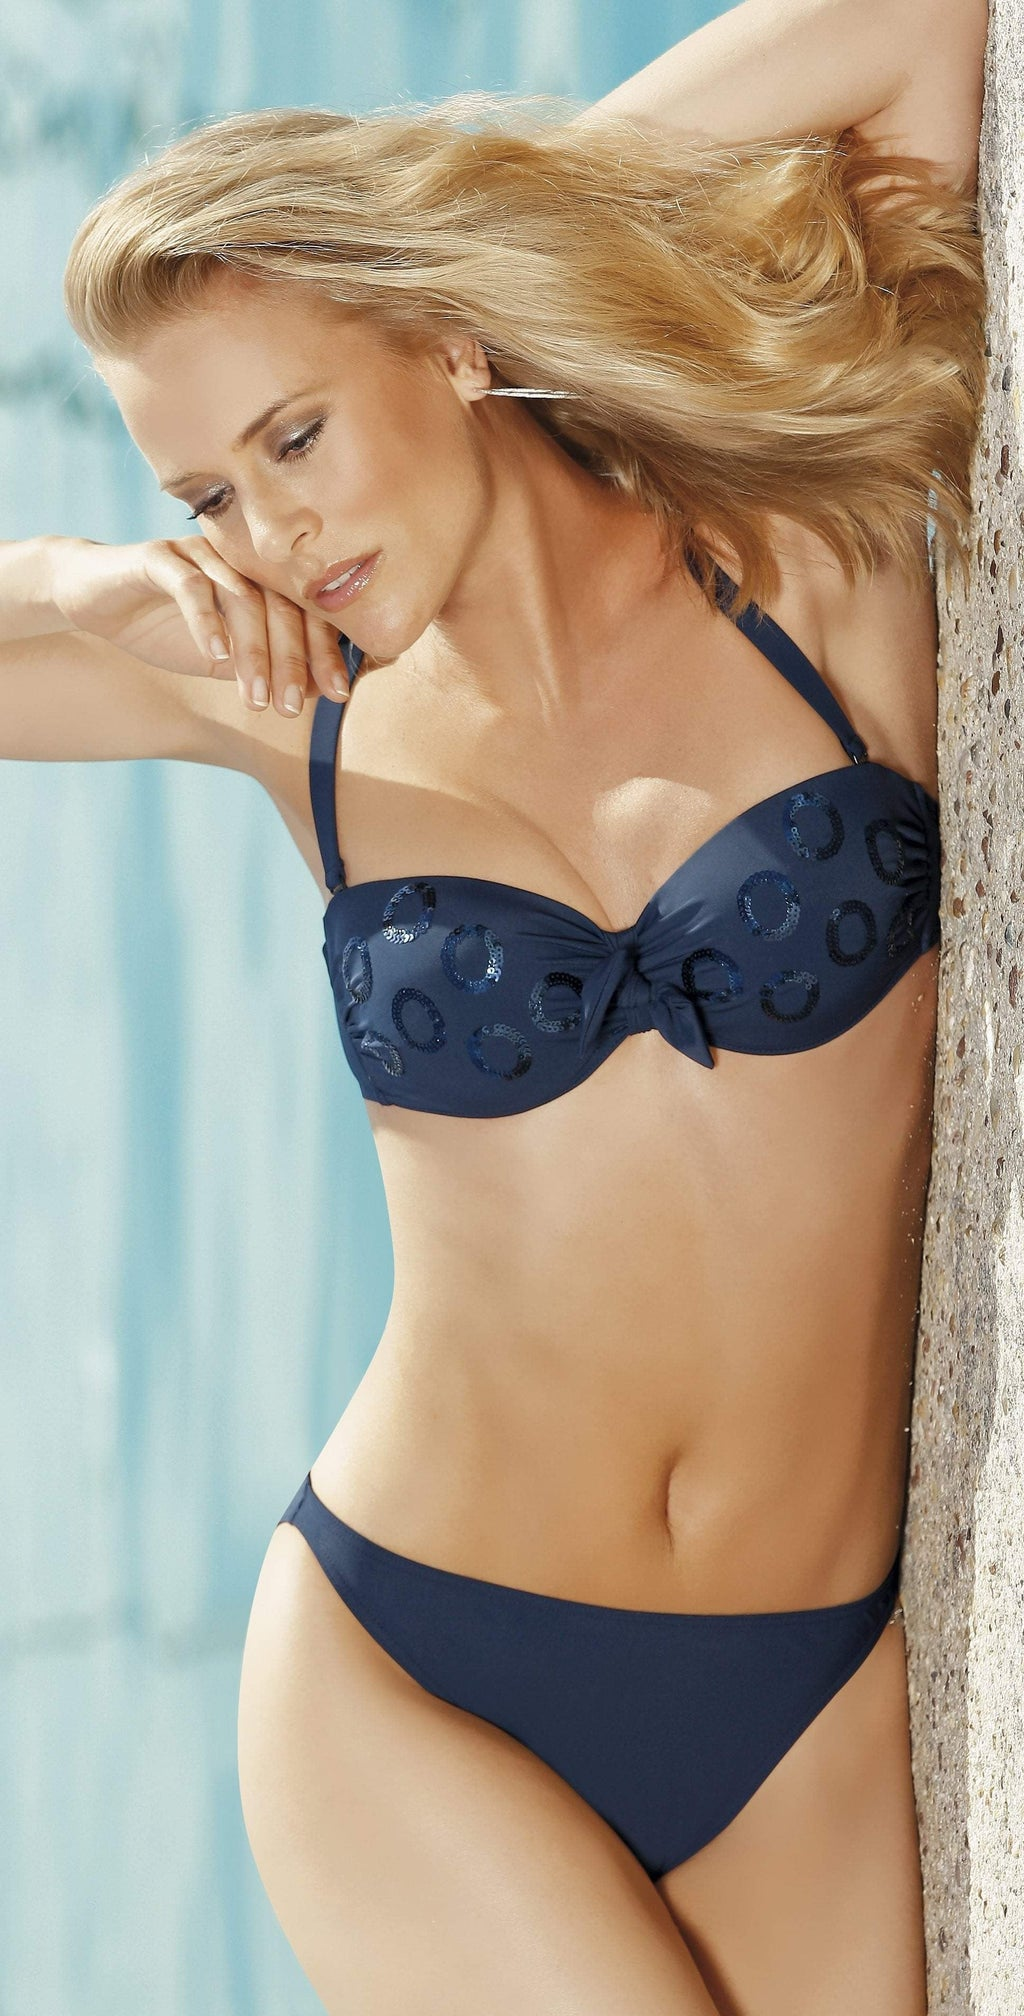 Opera Swim Couture Navy Bandeau Bikini Set 61003-30: